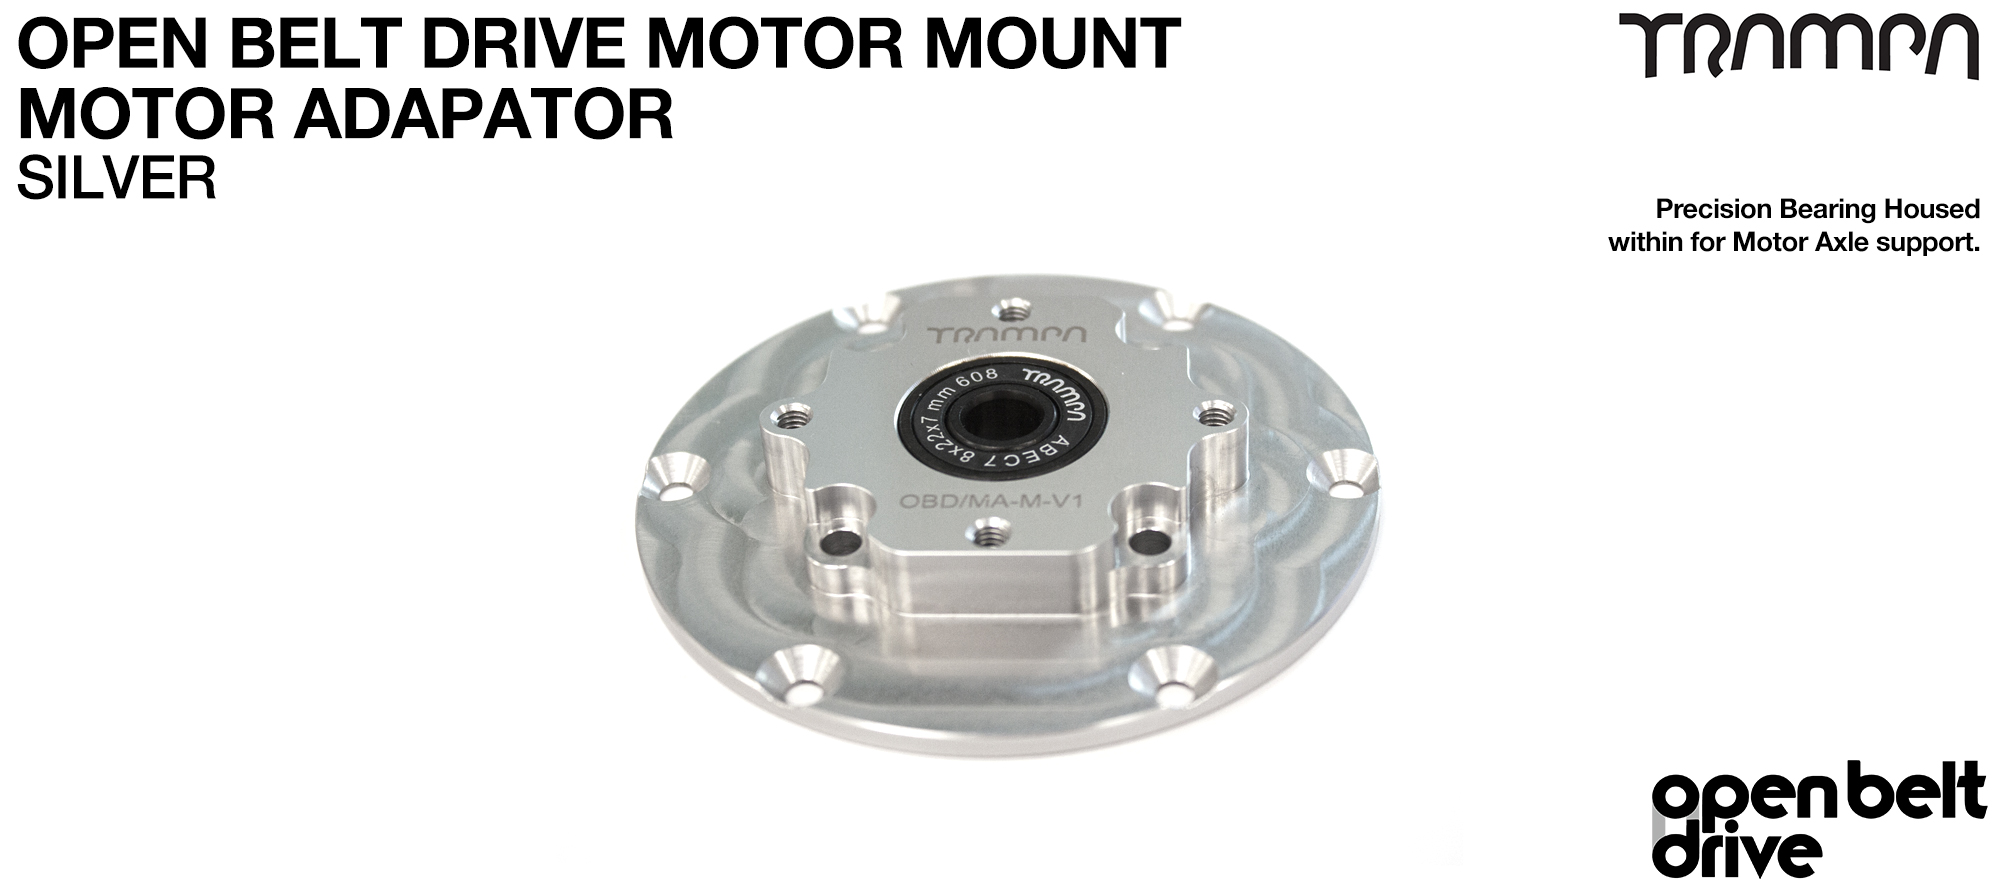 OBD Motor Adaptor with Housed Bearing - SILVER